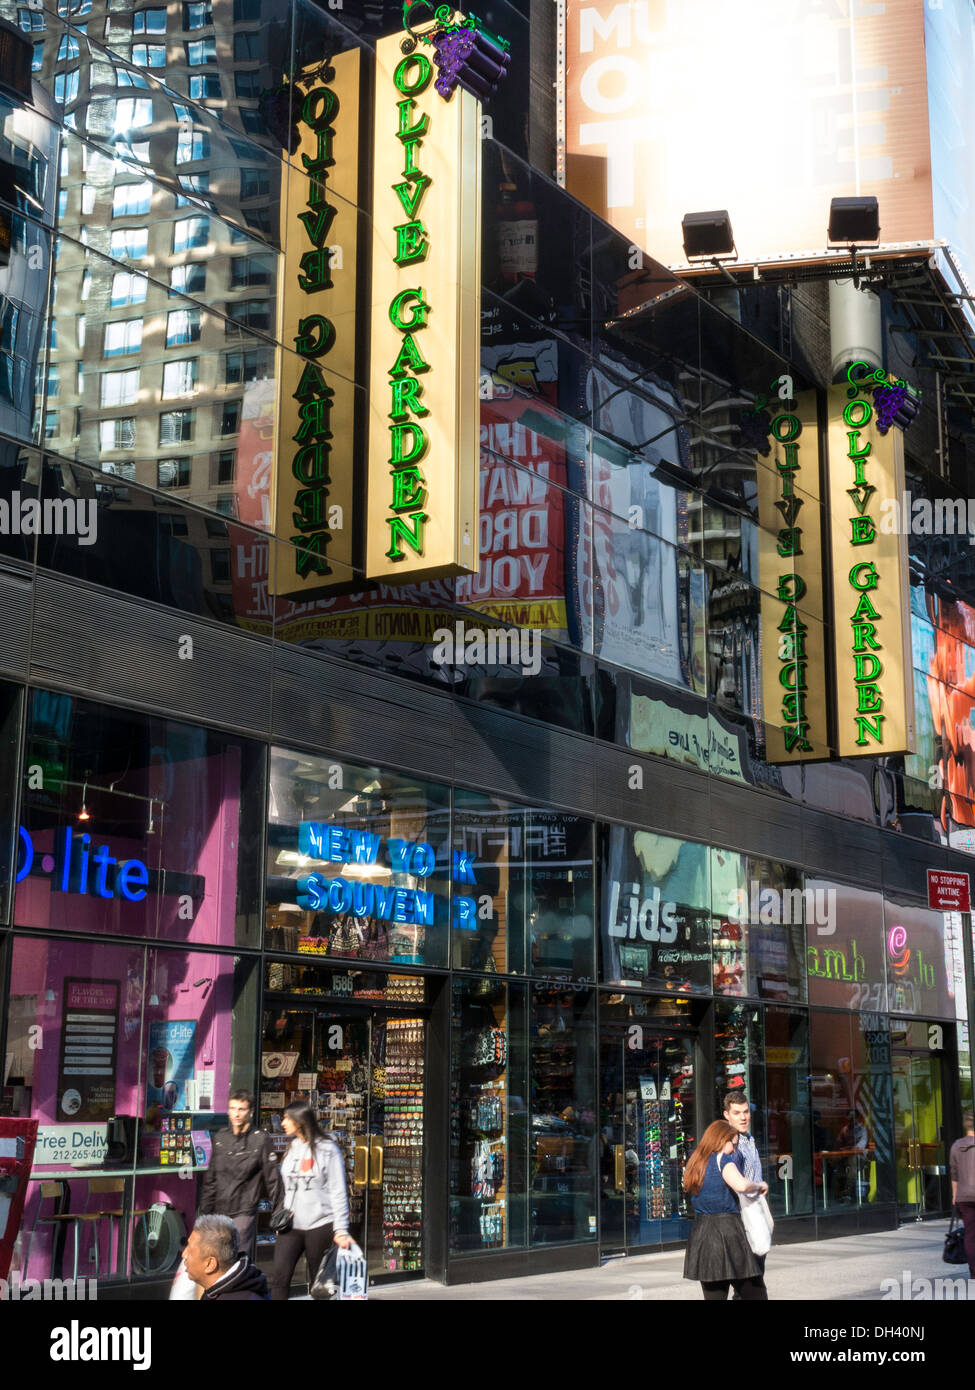 Street scene olive garden italian restaurant in times square nyc stock photo royalty free Olive garden italian restaurant new york ny